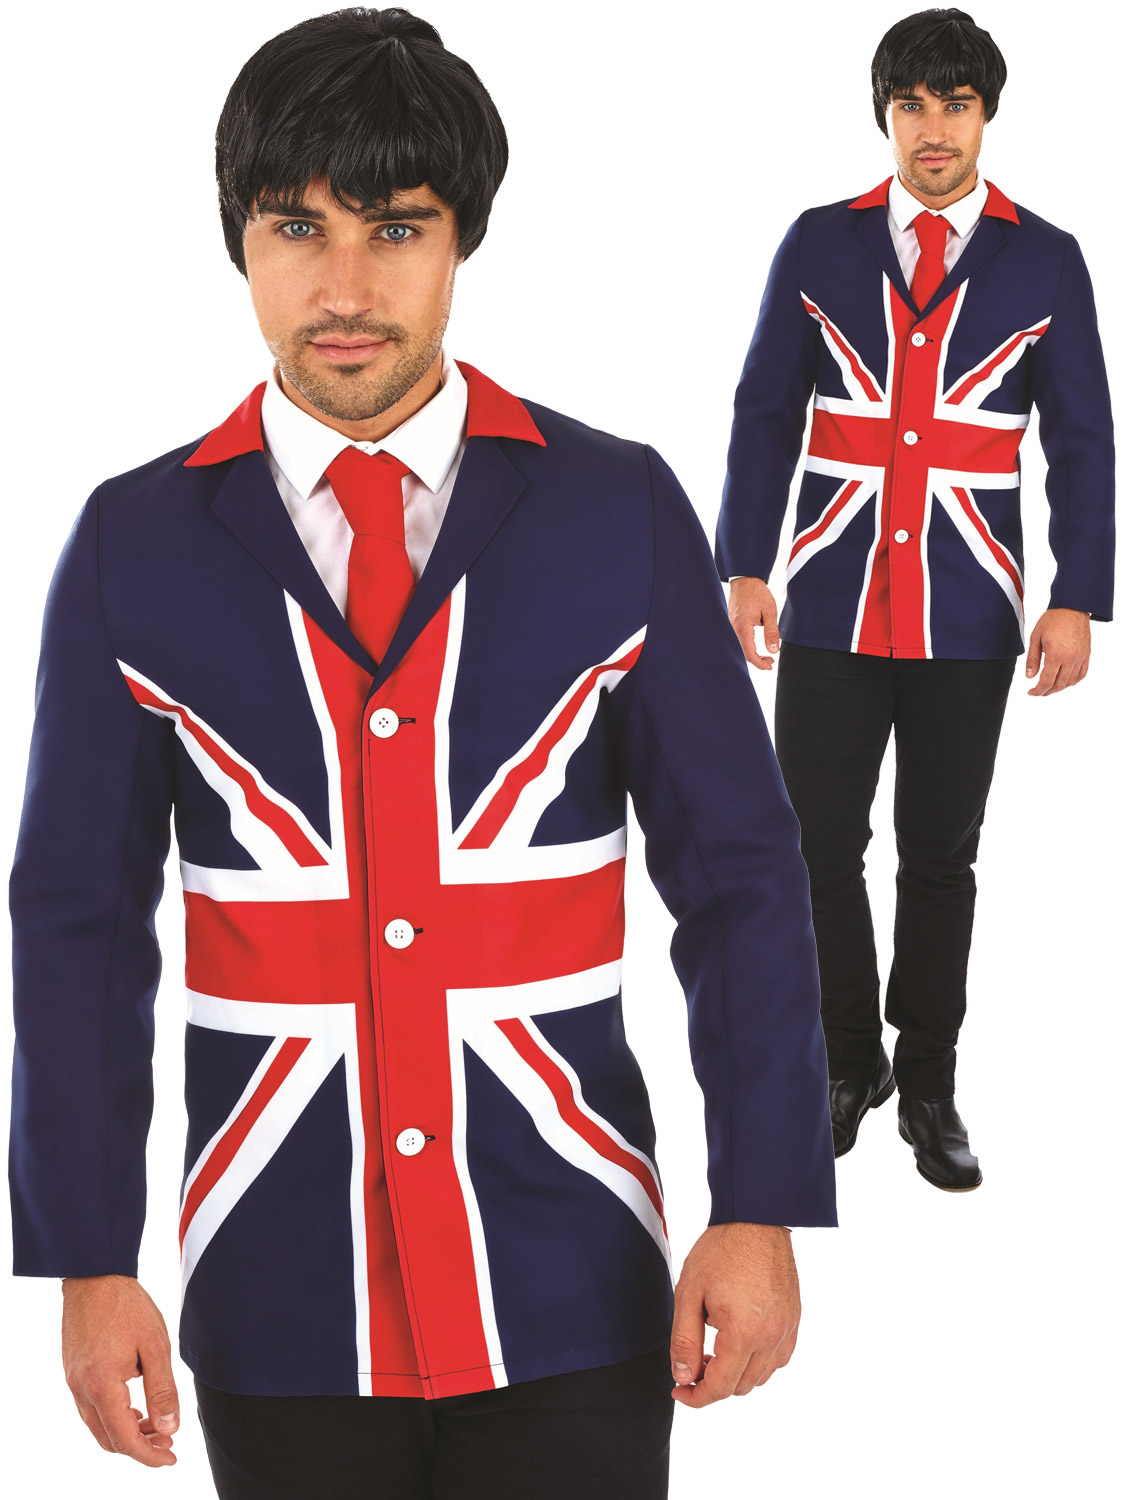 271730617bc Details about Mens 60s 70s Mod Jacket Adults Union Jack Fancy Dress Costume  1960s Outfit Retro